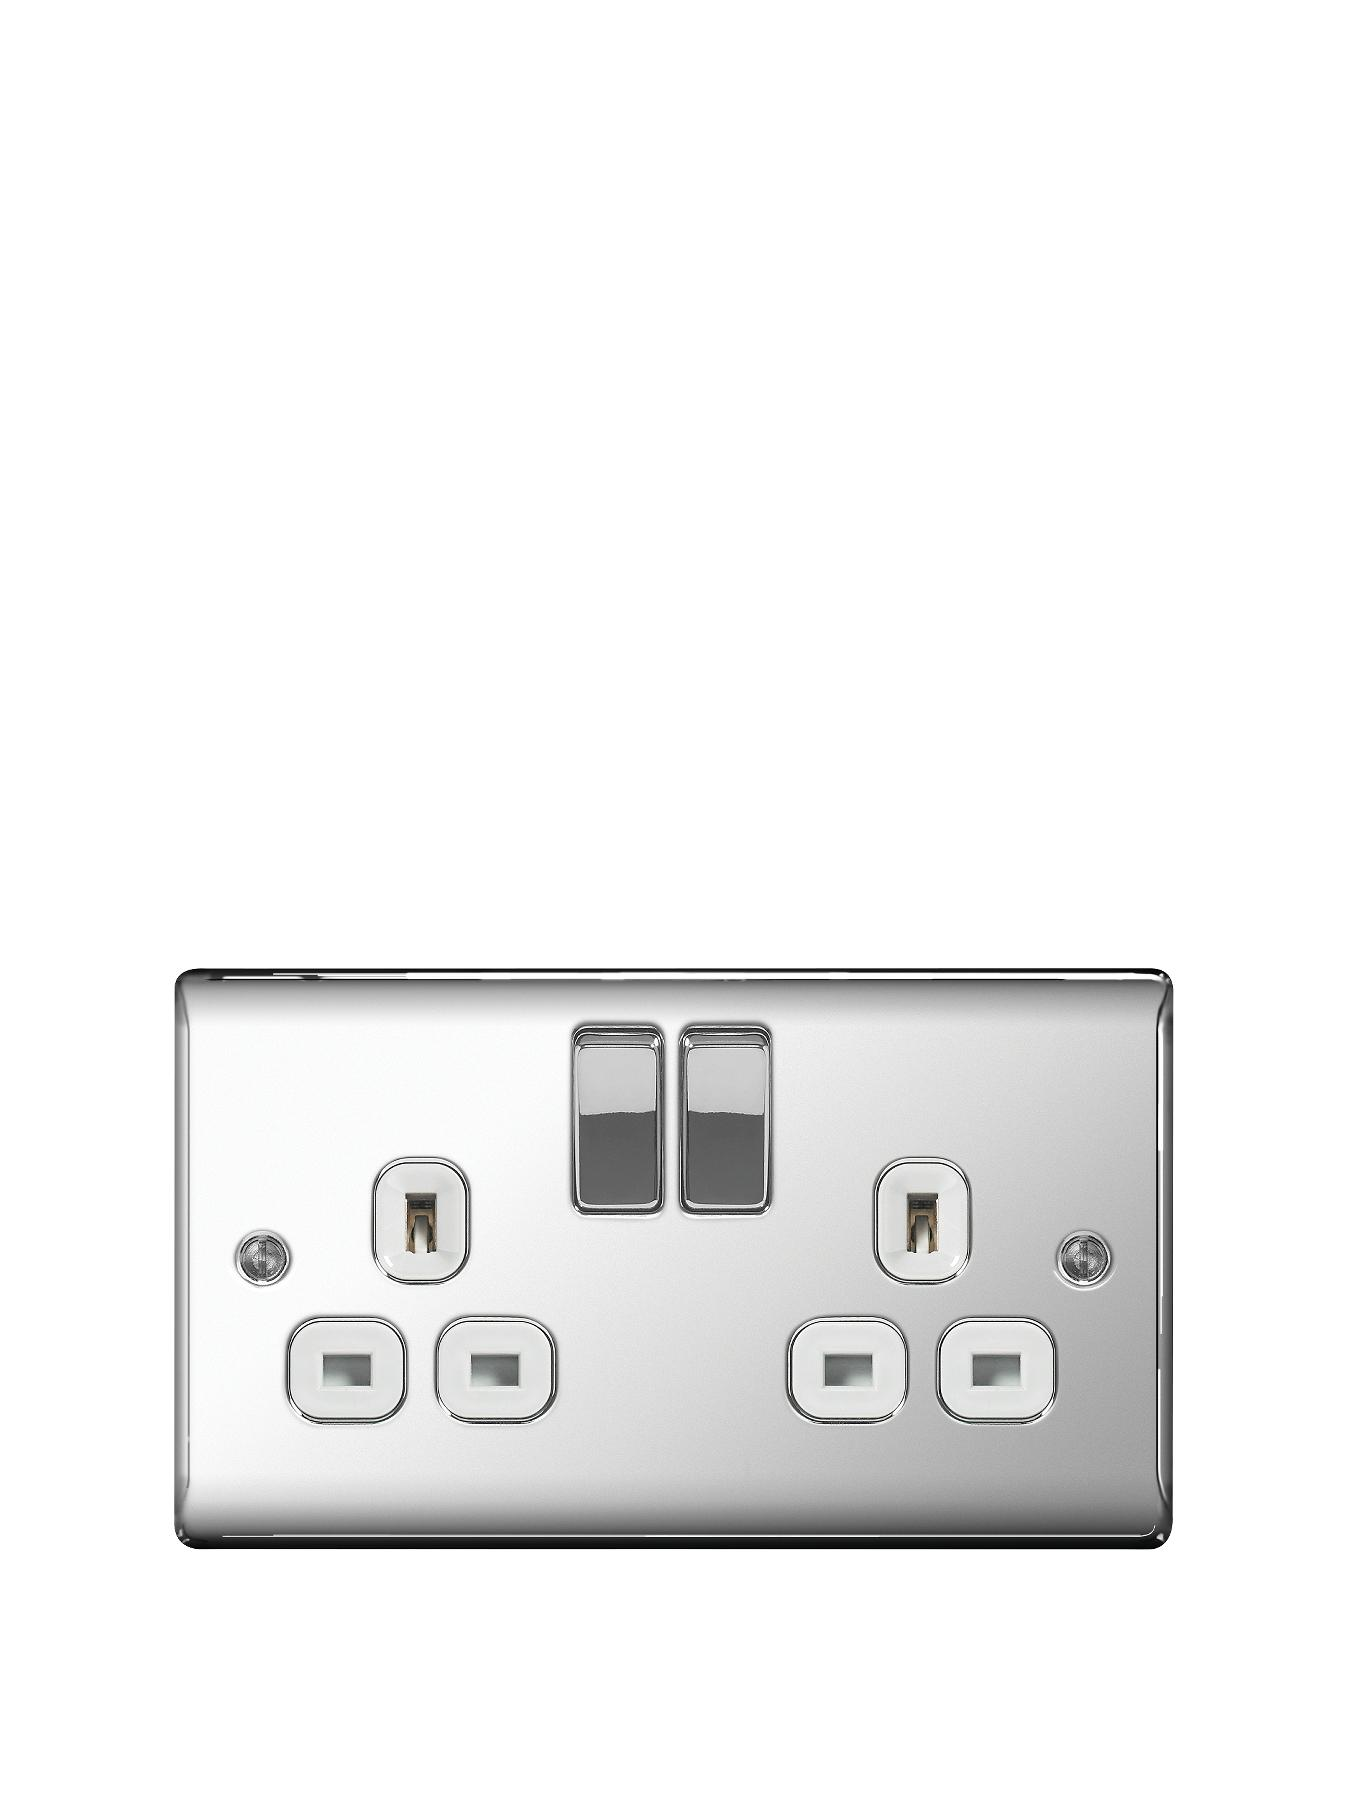 British General Electrical Raised 2g Switched Socket (13 Amp) - Polished Chrome